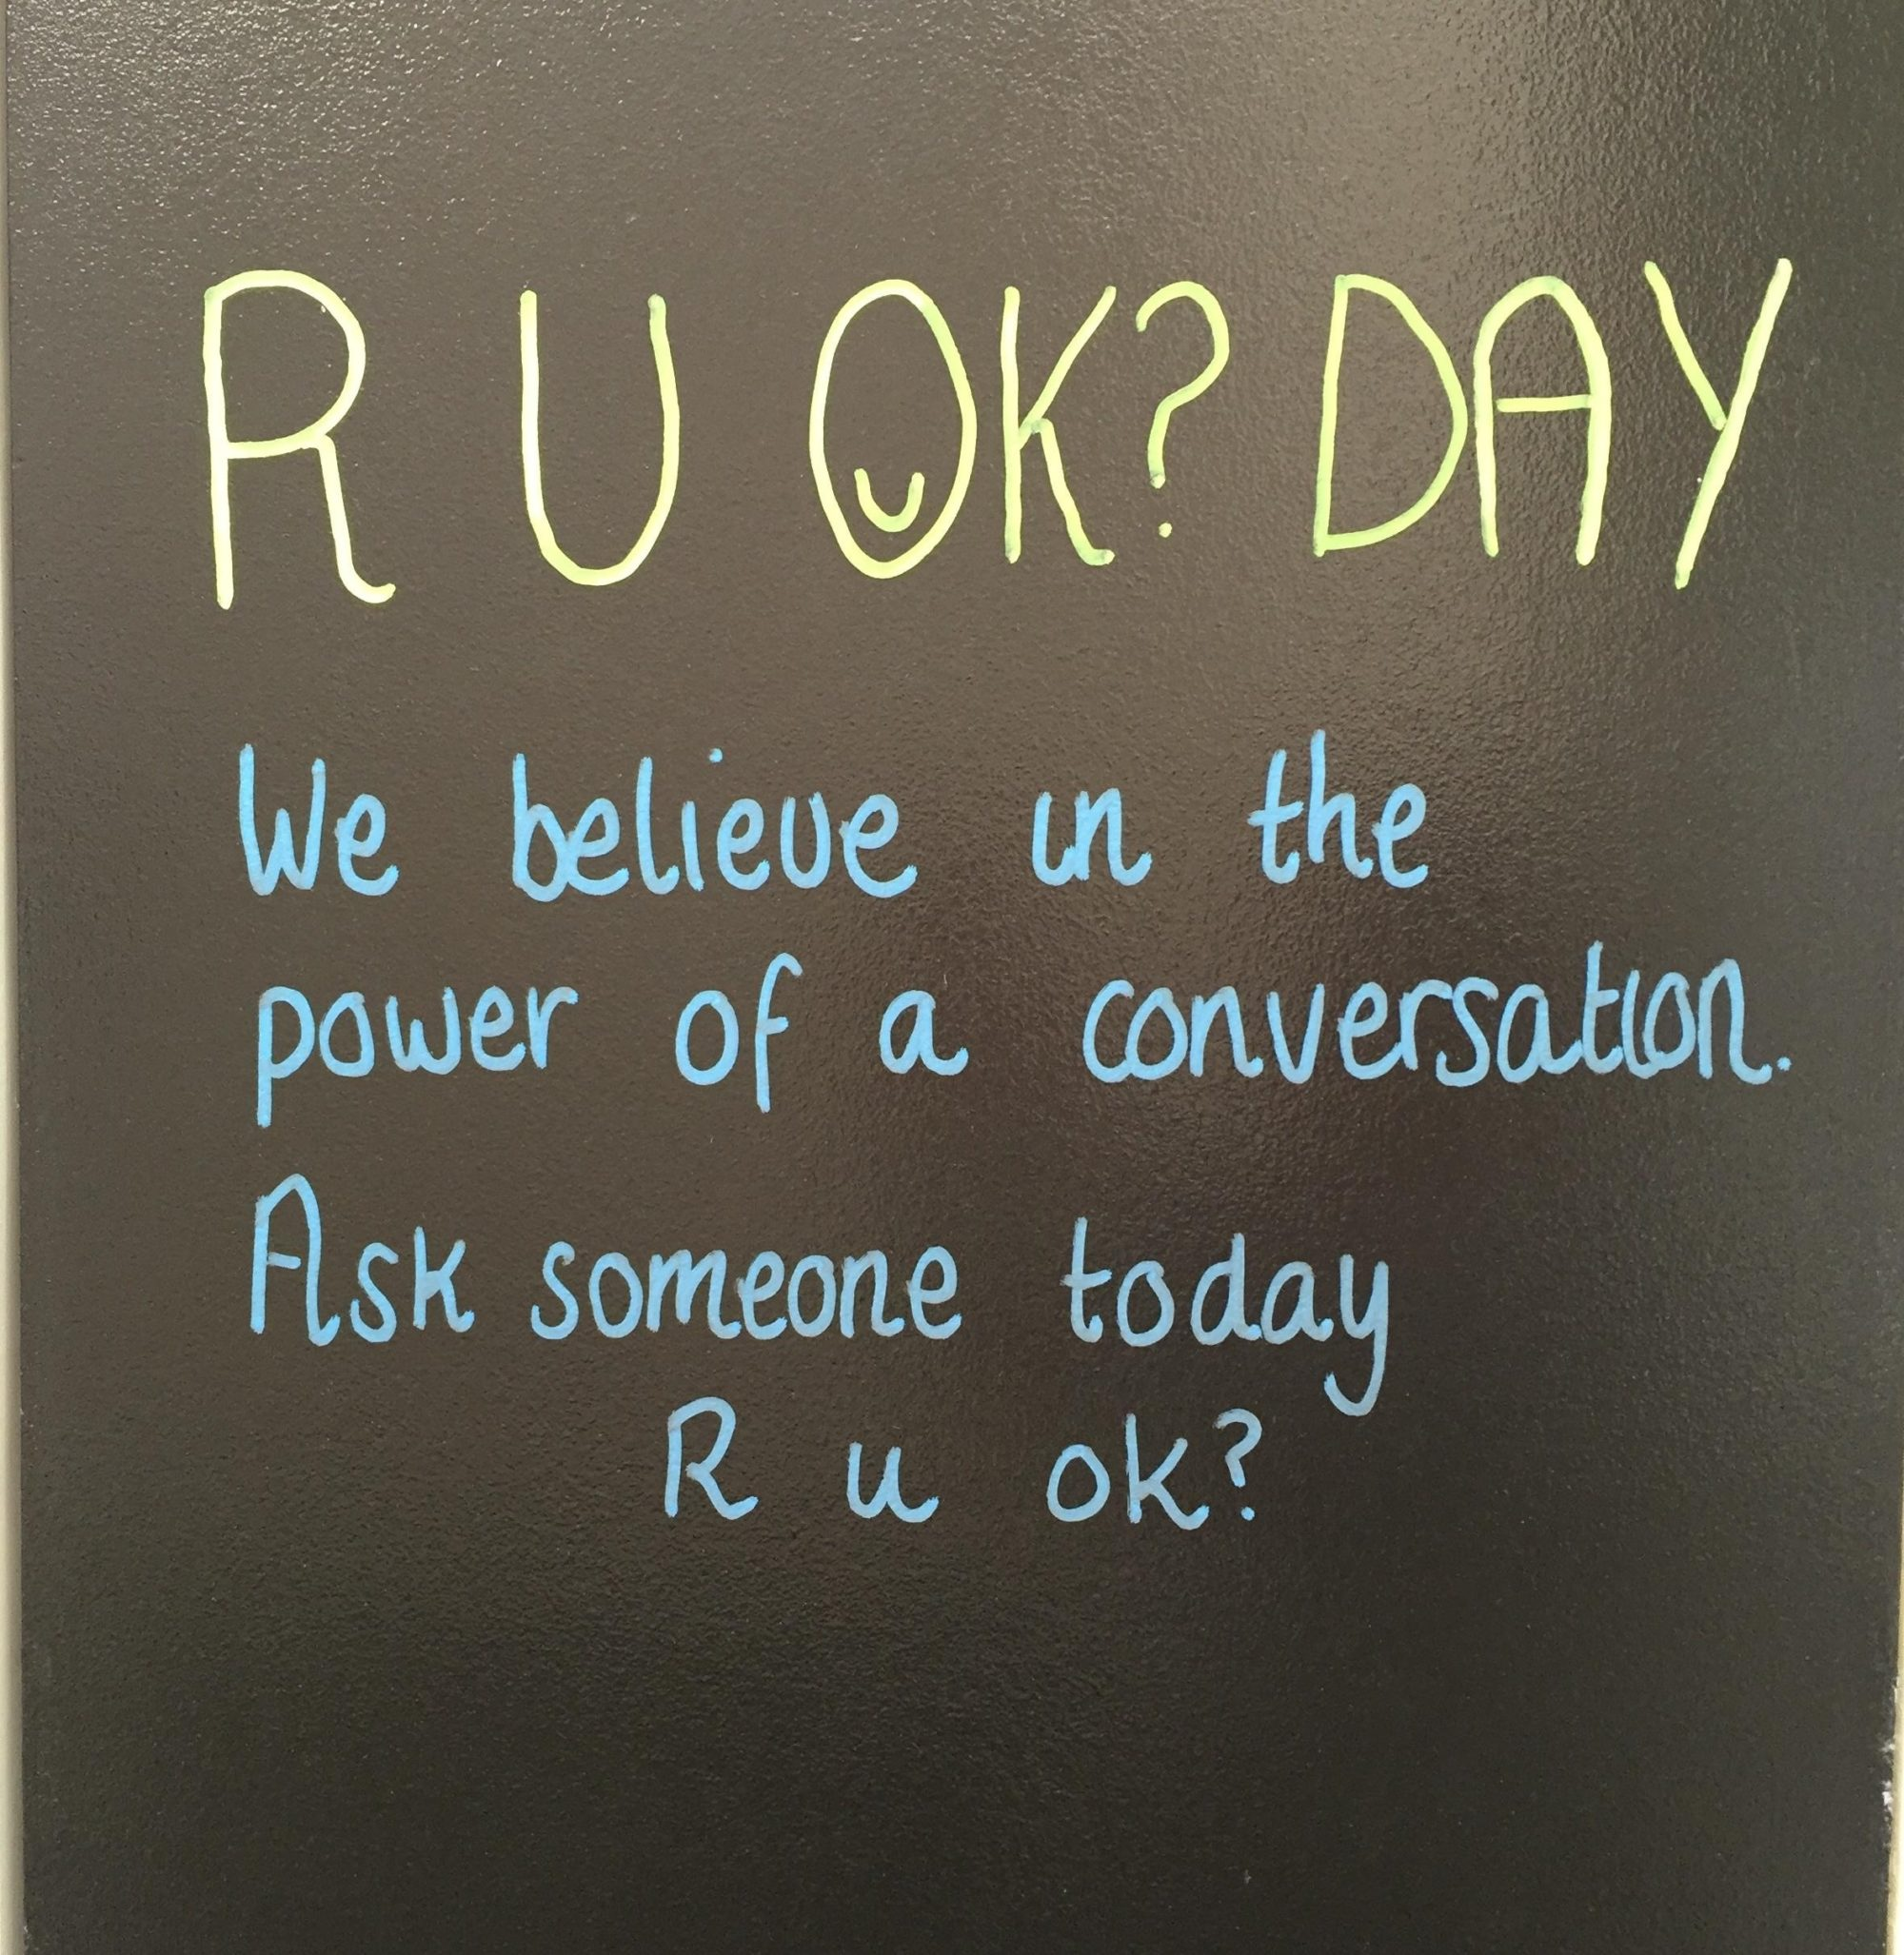 R u ok? Day - 10th September 2015